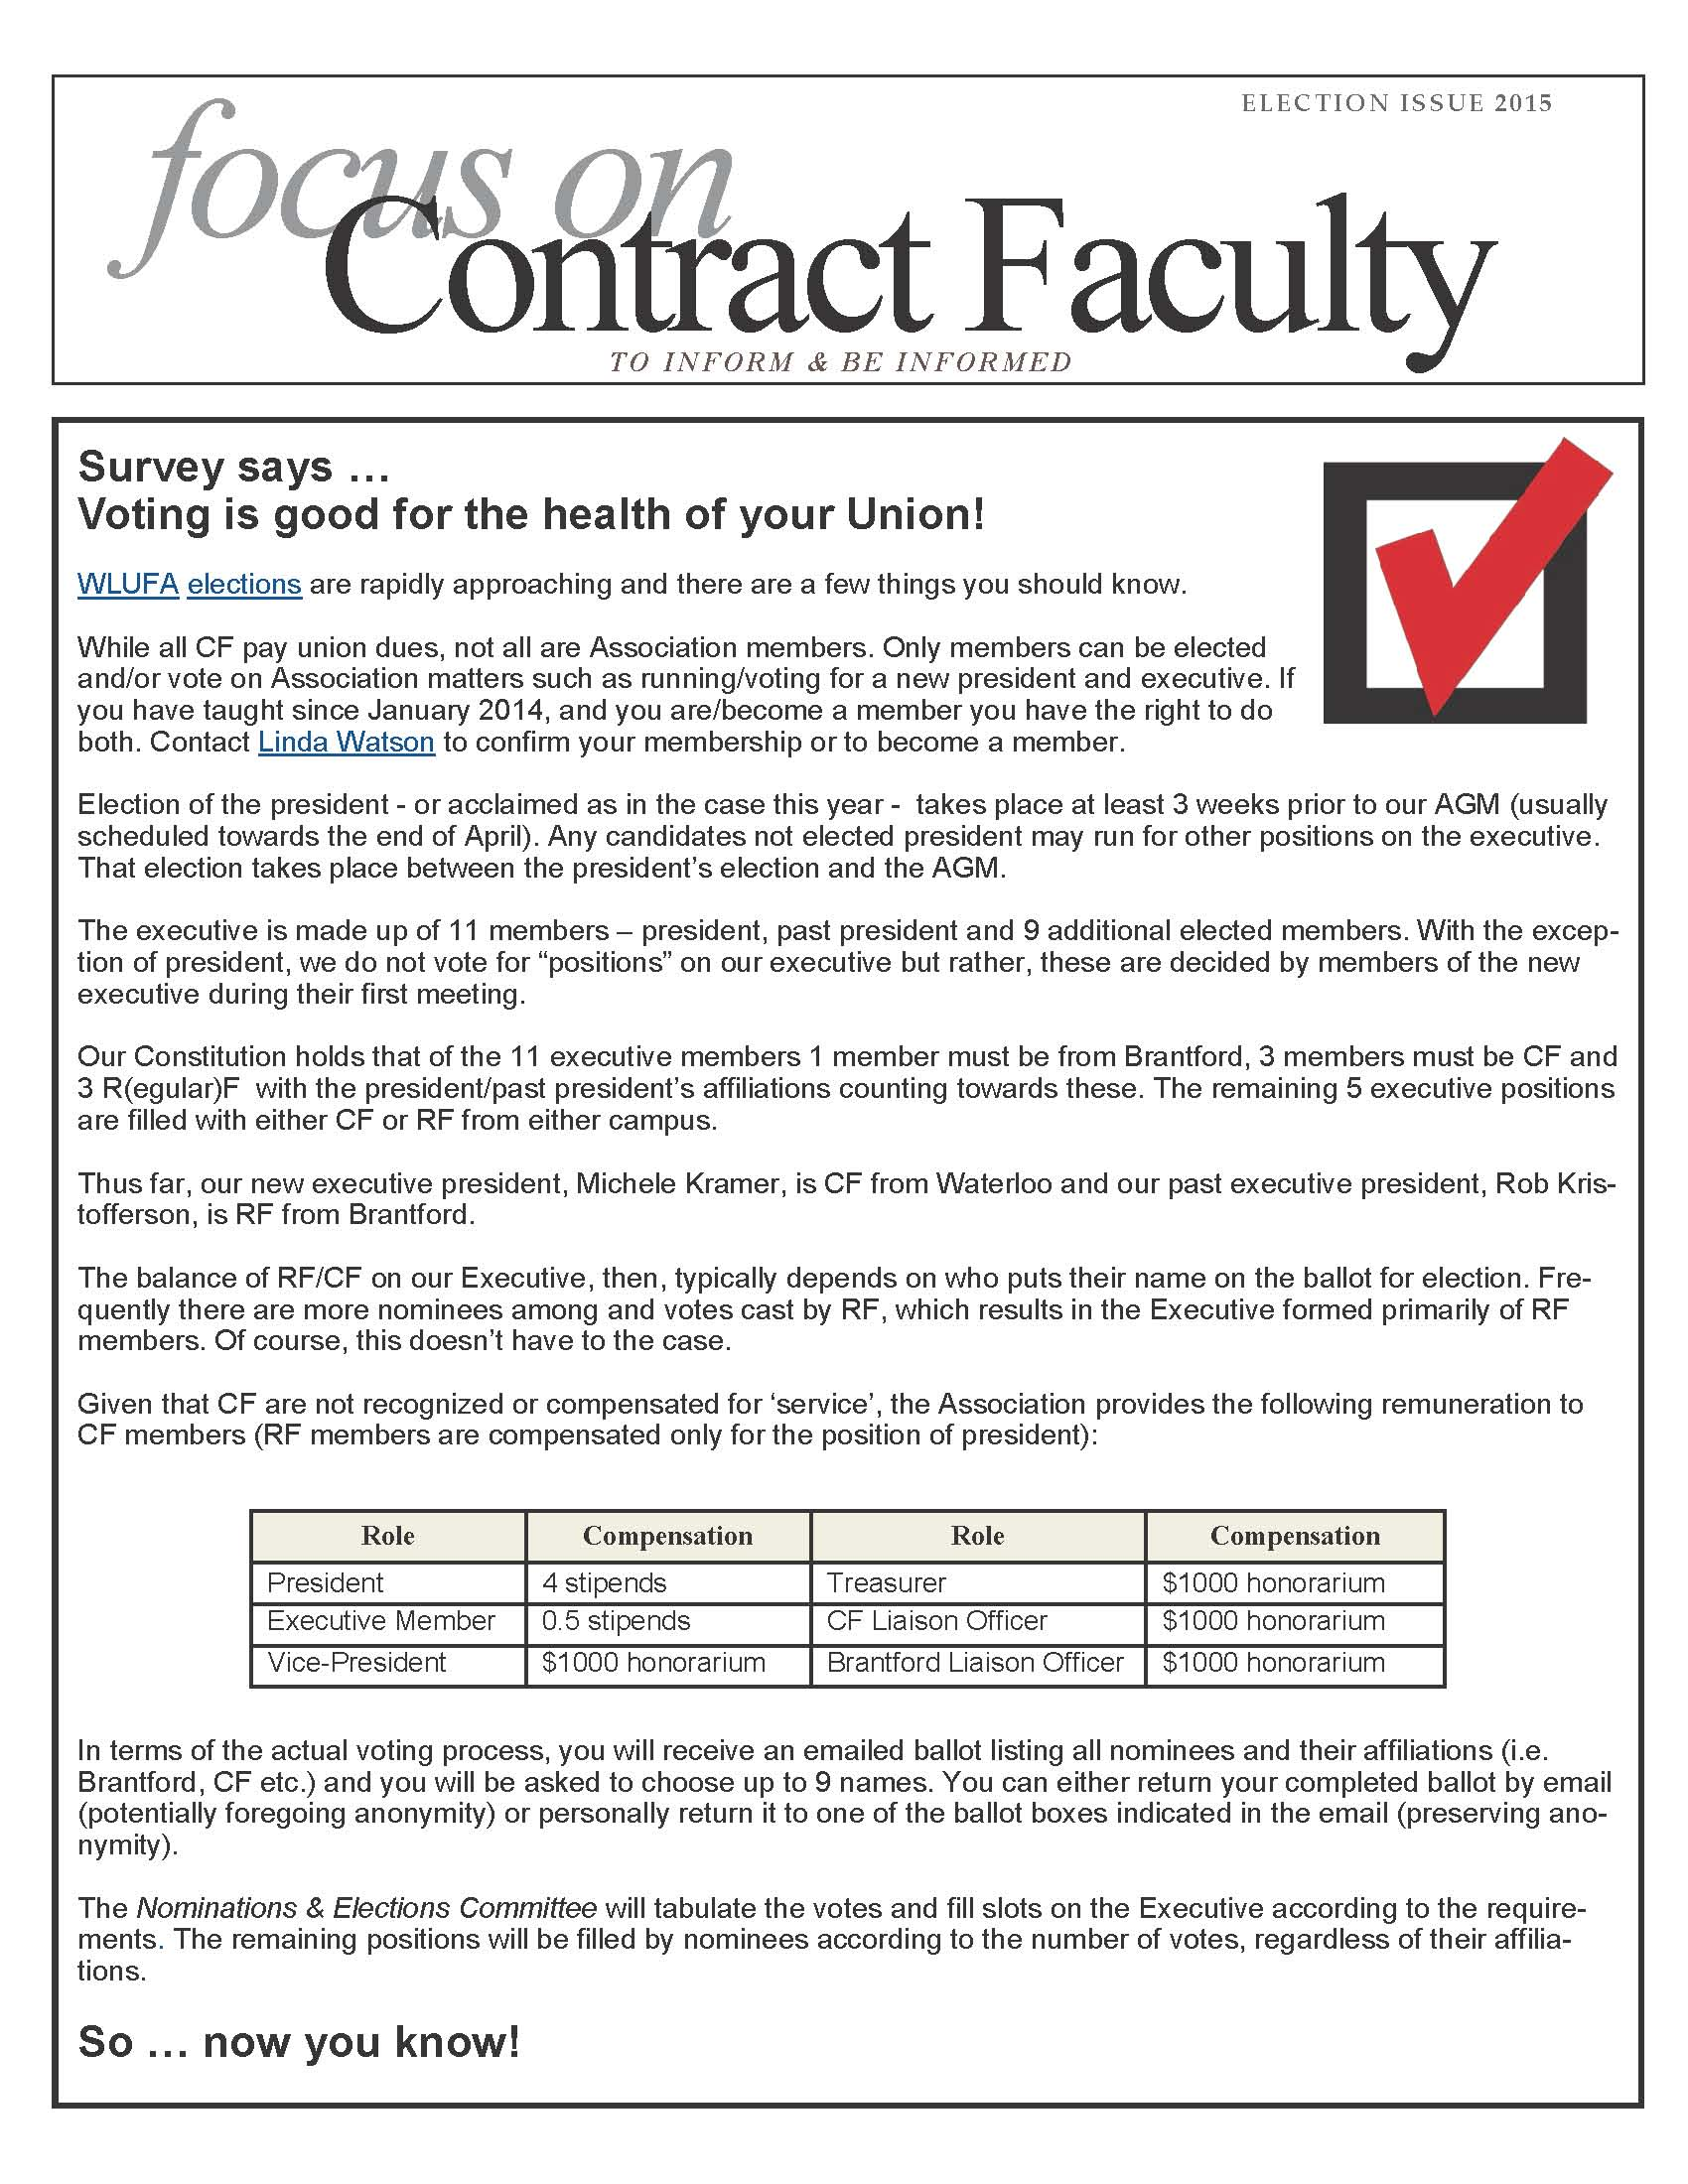 focus on contract faculty, election issue 2015